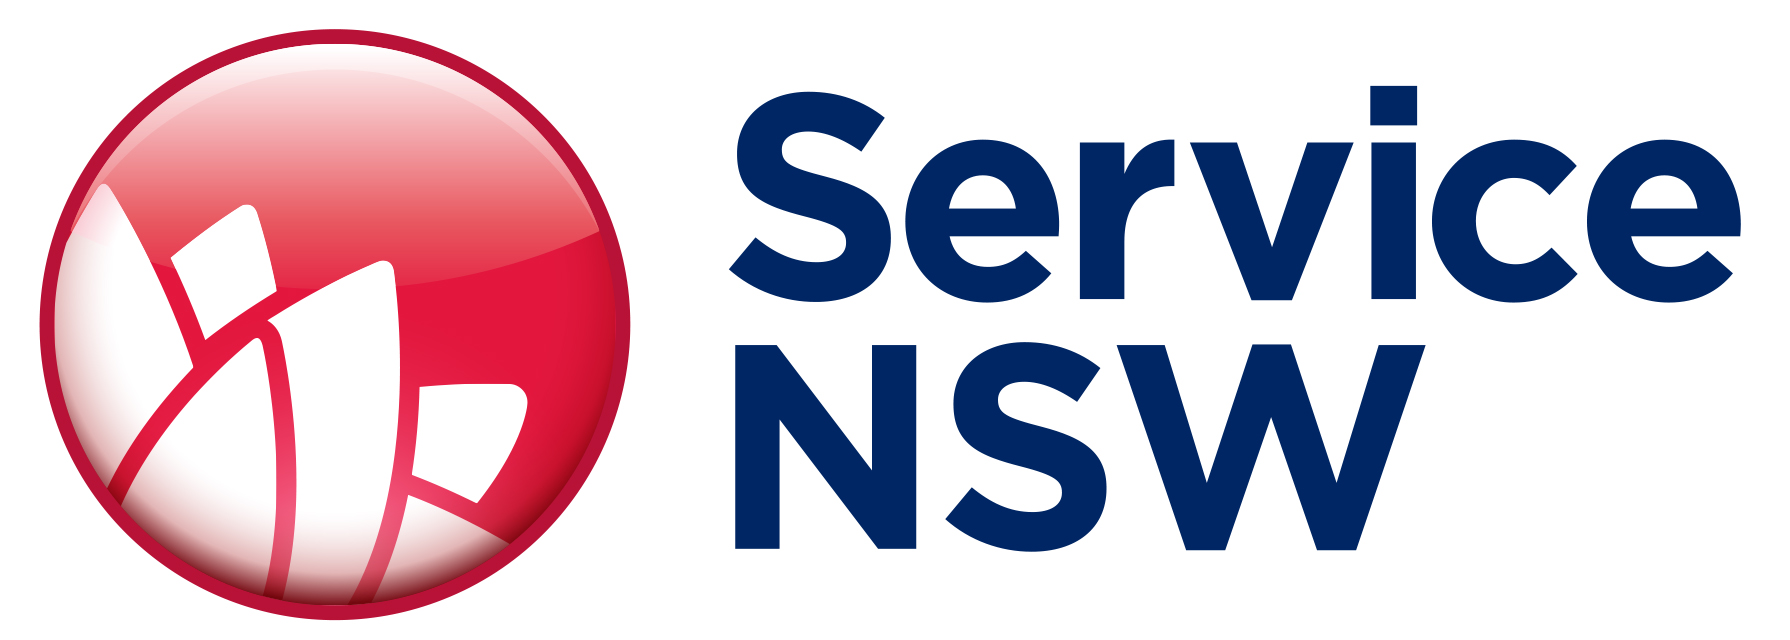 Service NSW Coolah Agency is now open at 59 Binnia Street Coolah Monday, Wednesday and Friday